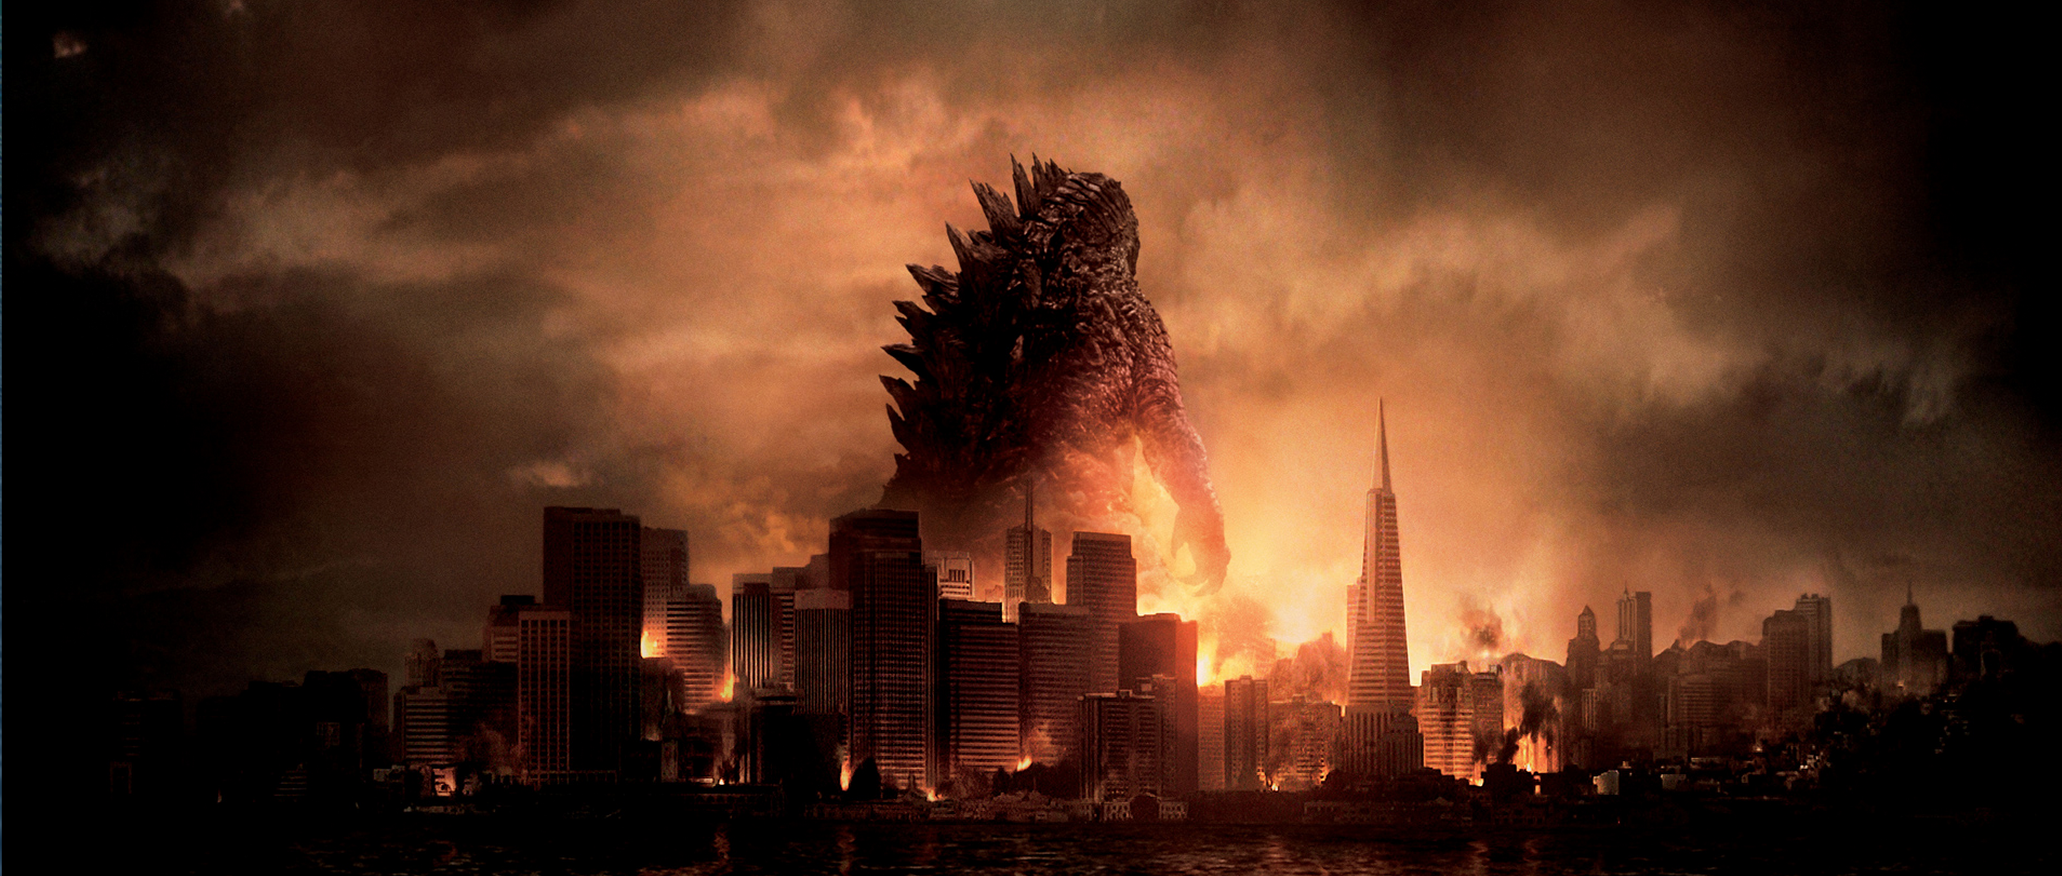 Bringing The Godzilla Roar Into 21st Century